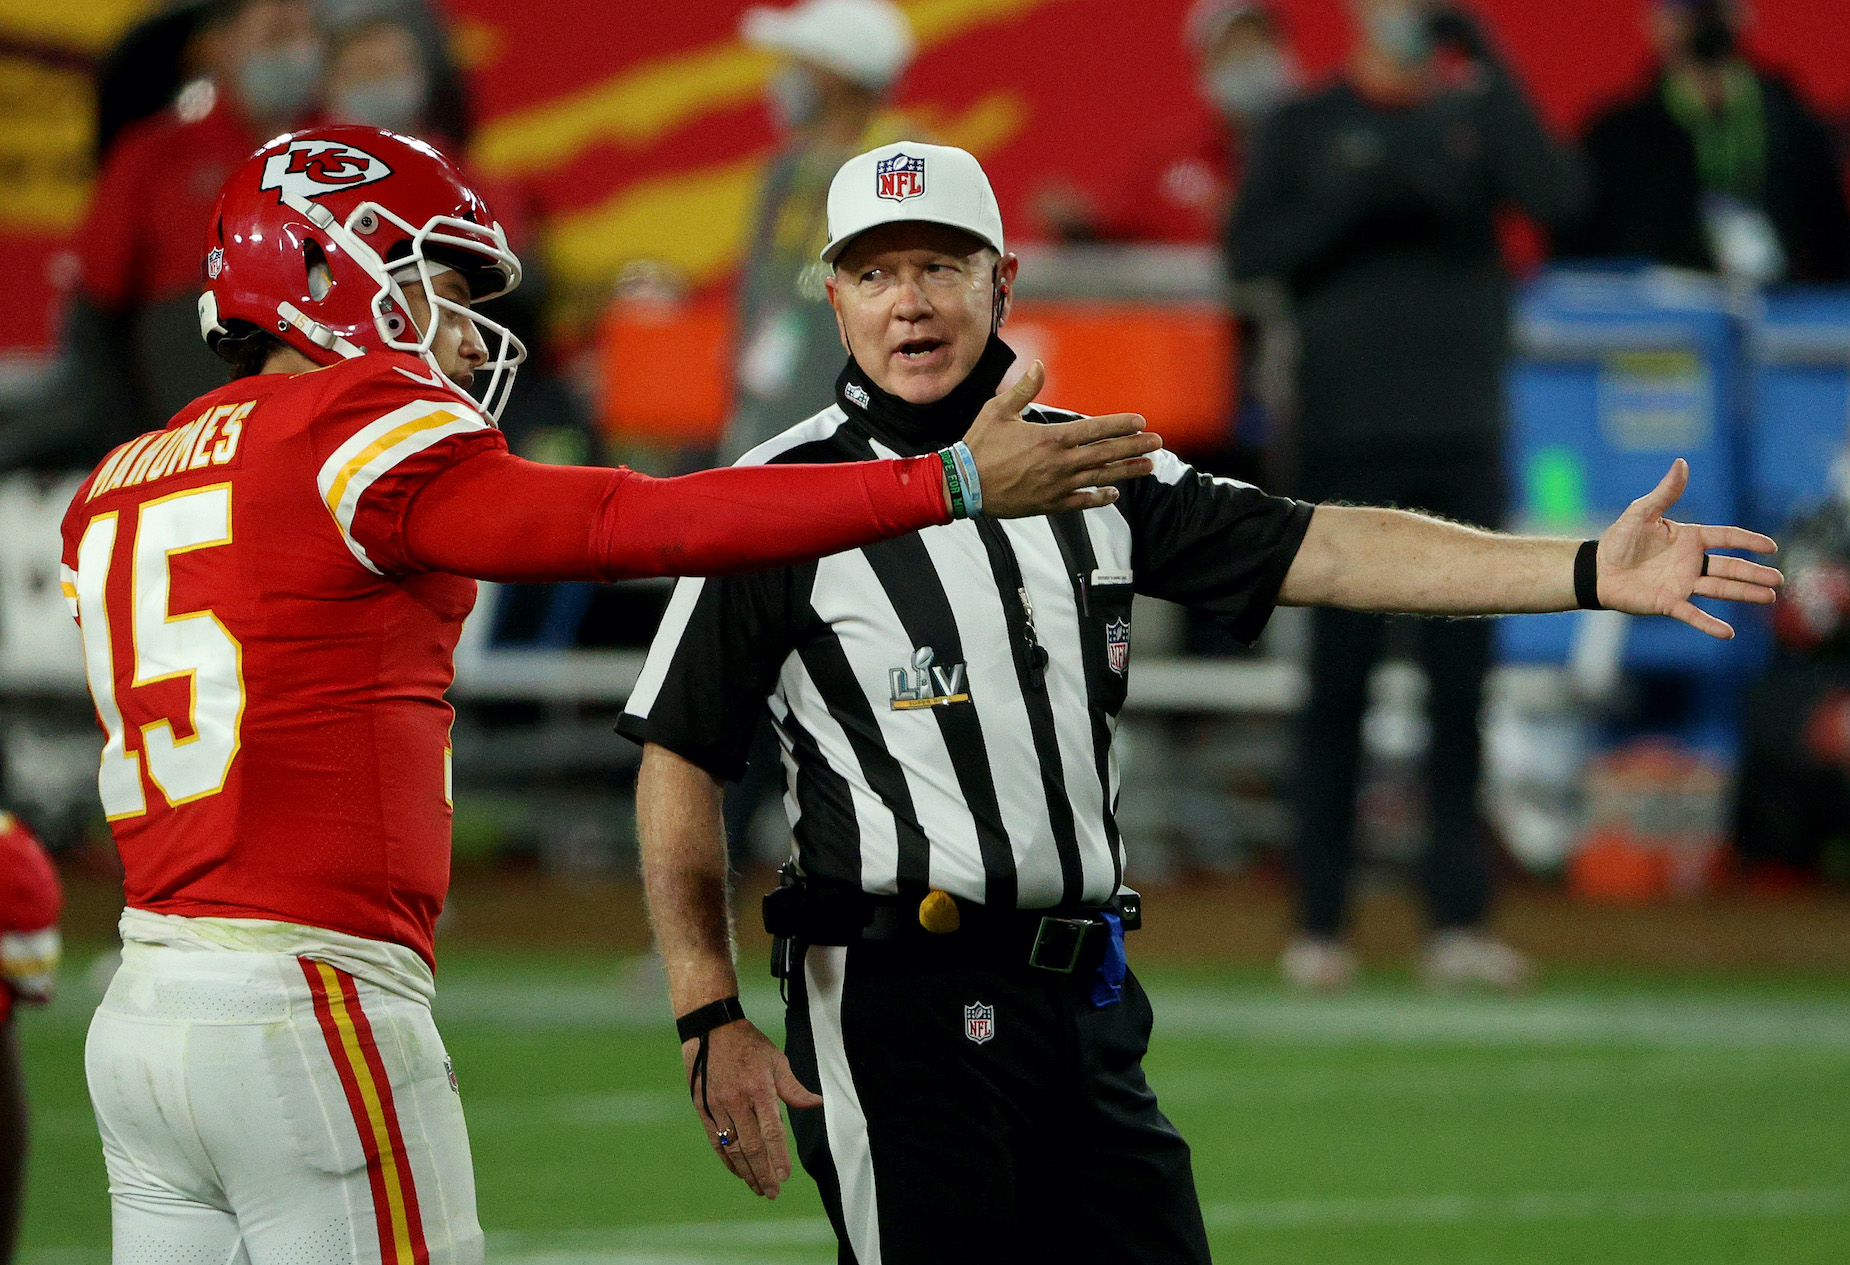 Super Bowl 55's Referees Made Some 'Very Unusual' Calls, According to a Former NFL Official